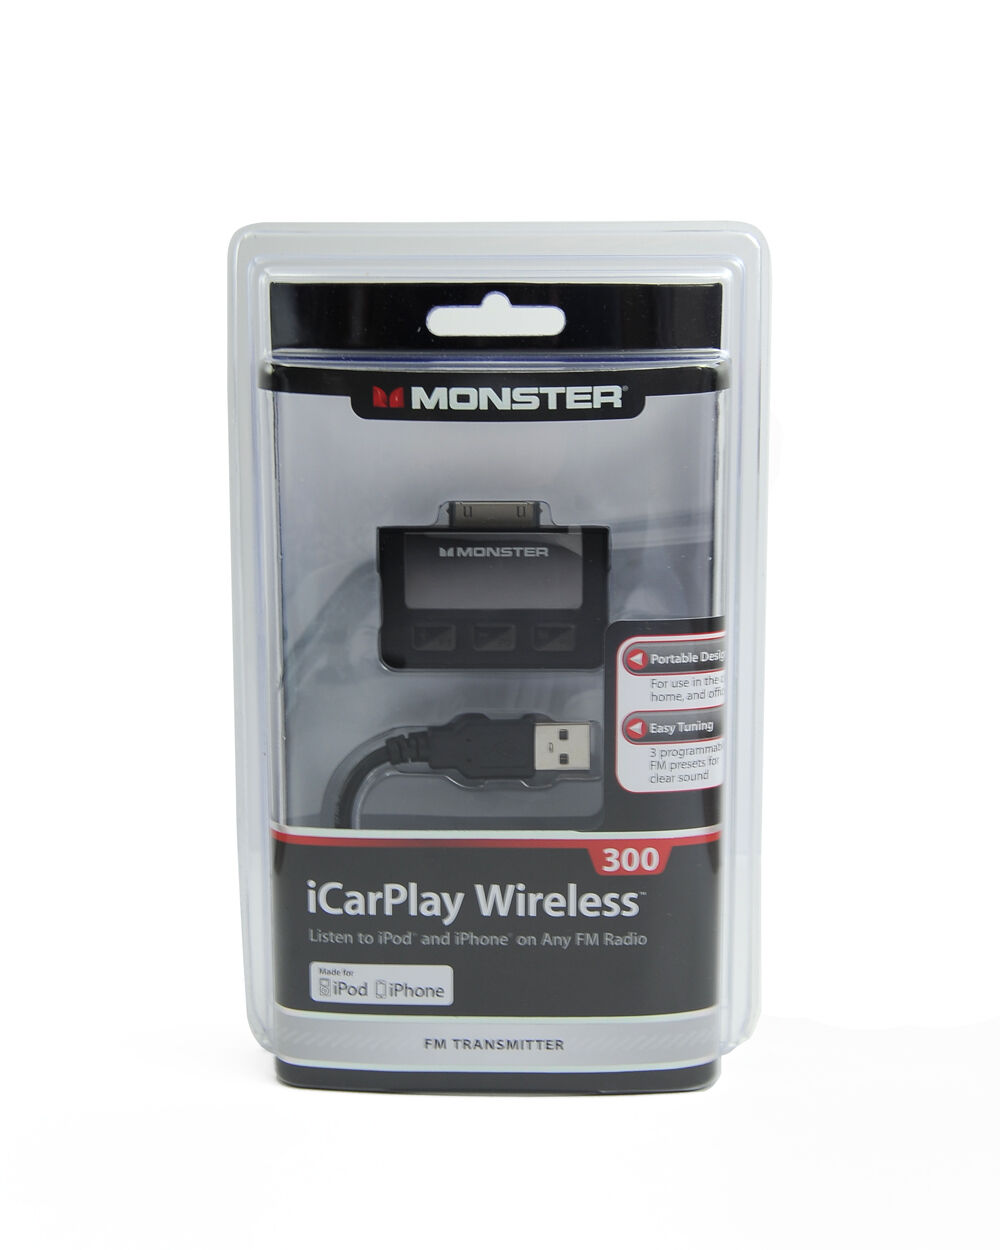 monster cable icarplay 300 wireless fm transmitter dock. Black Bedroom Furniture Sets. Home Design Ideas